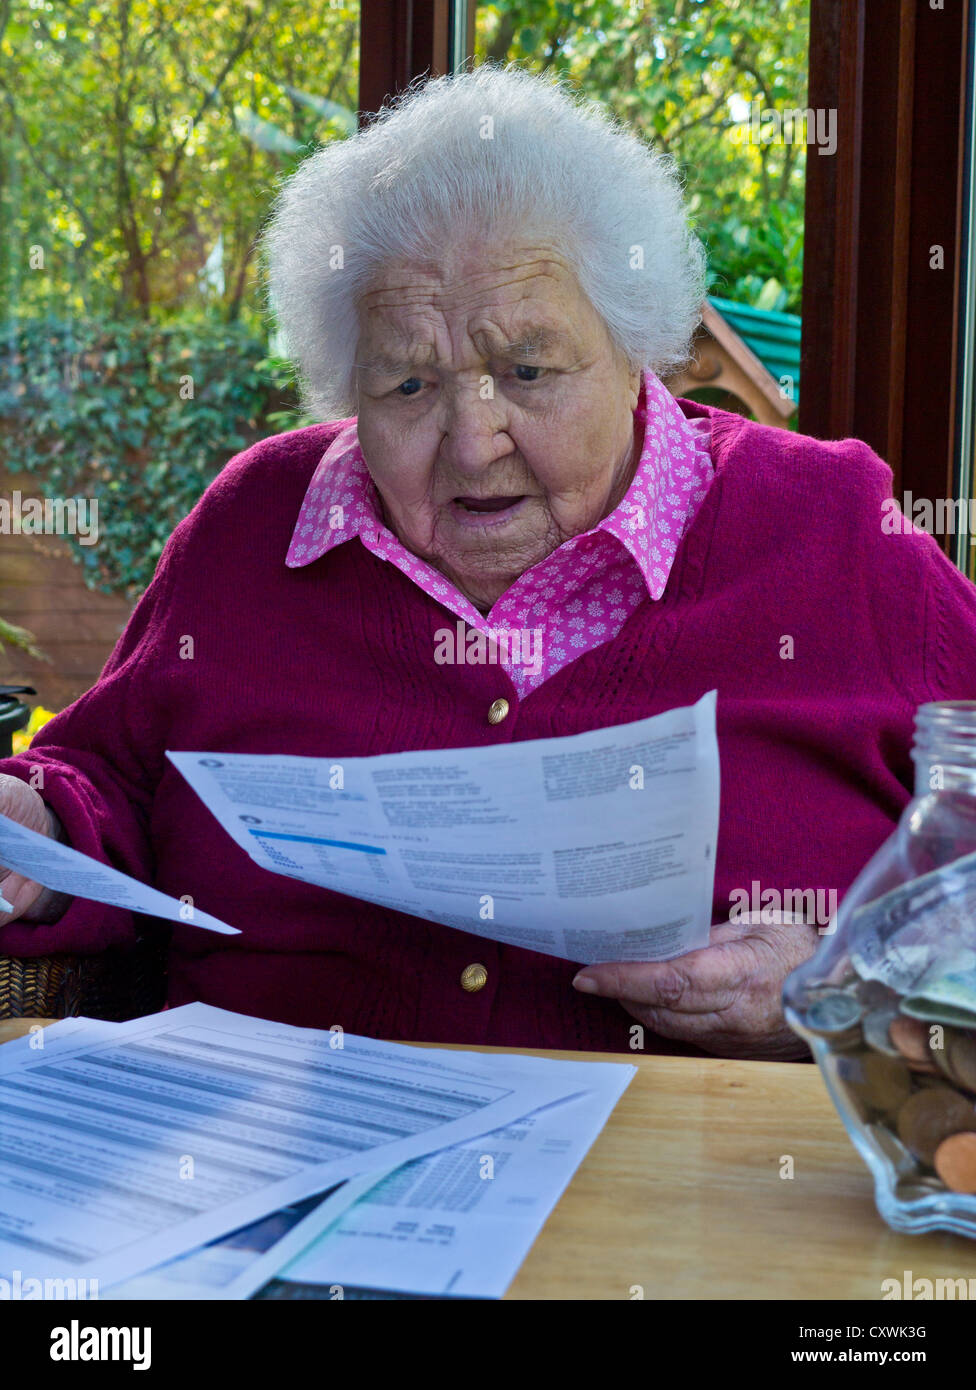 Concerned elderly senior 99 year old lady at home reading her latest energy / household bills/ investments letters - Stock Image